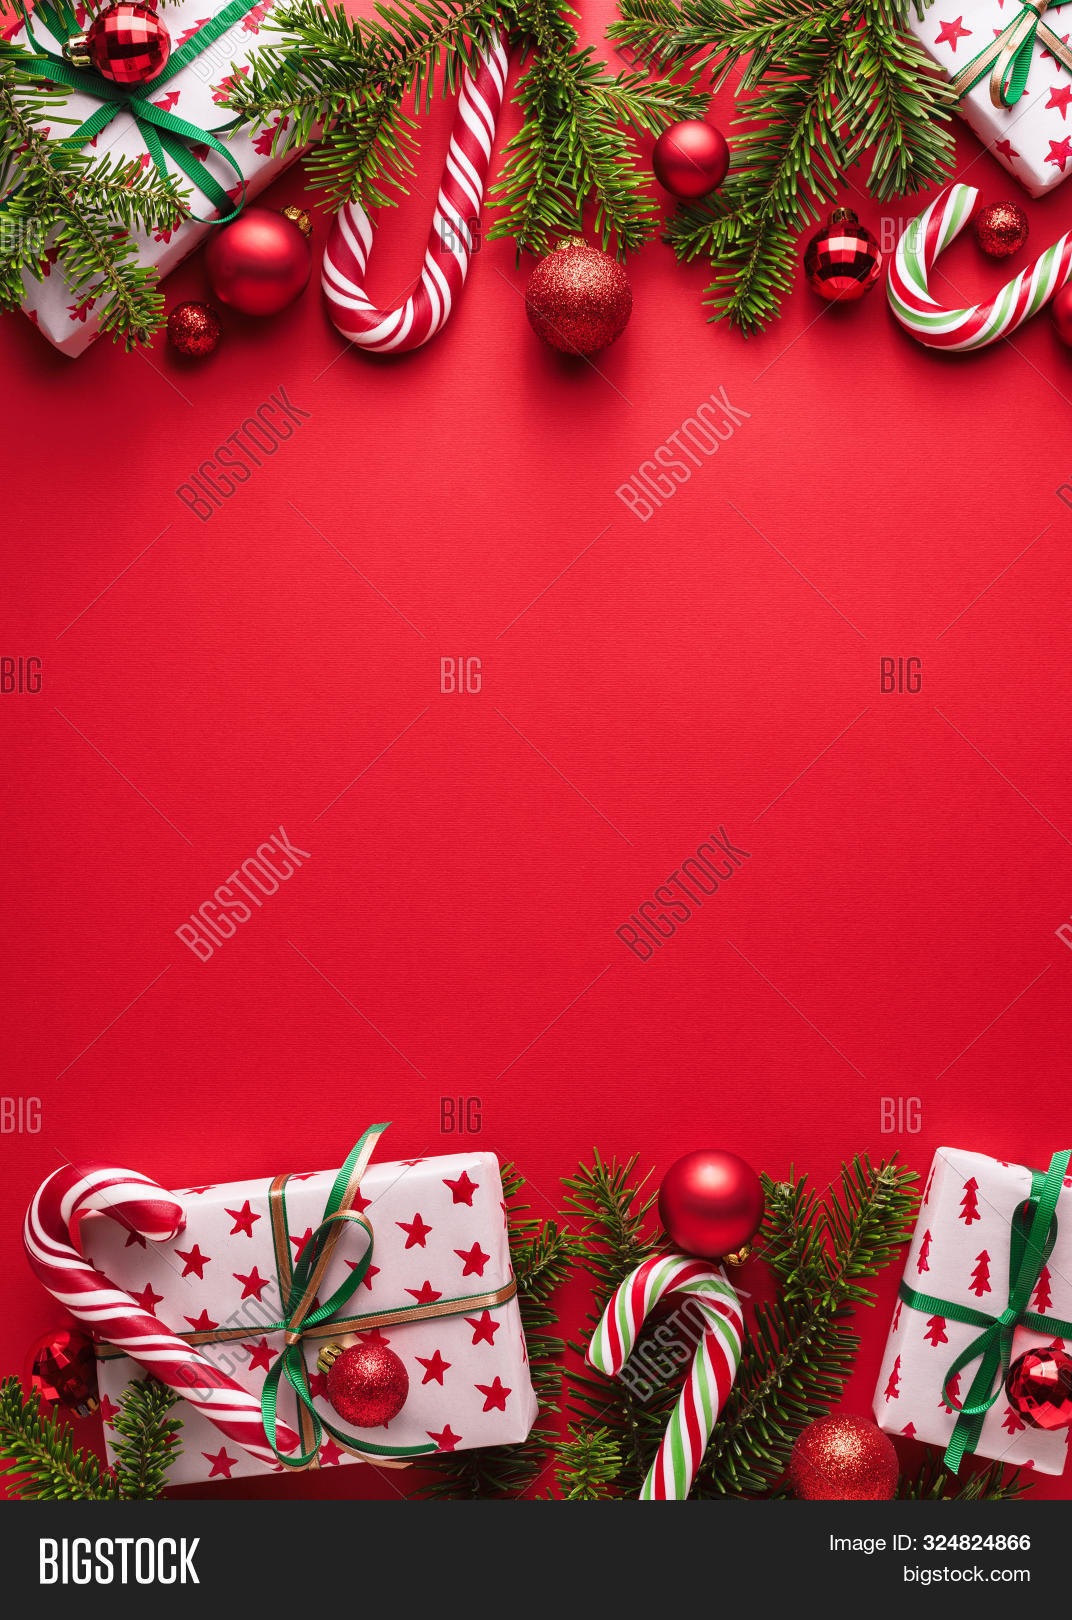 red merry christmas image photo free trial bigstock red merry christmas image photo free